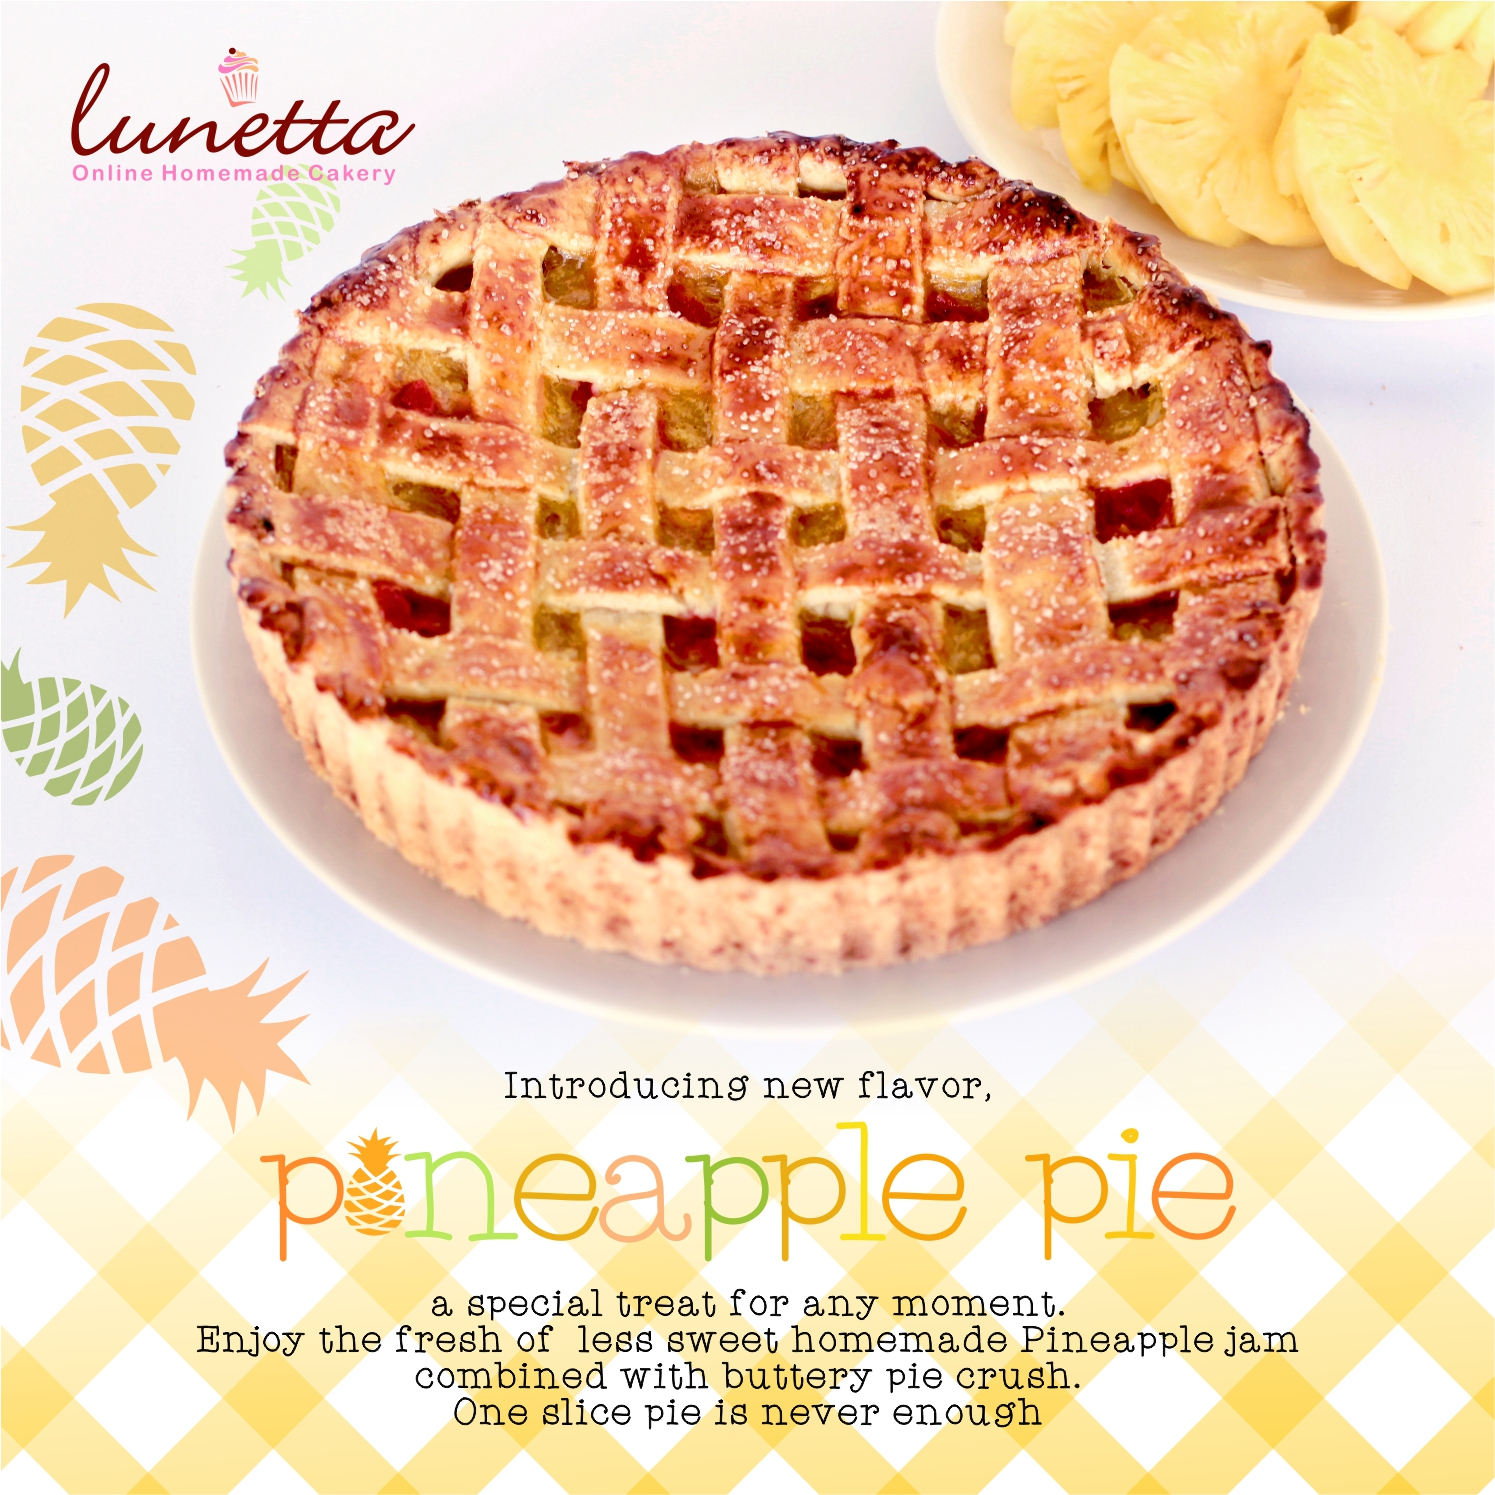 IG LUNETTA PINEAPPLE PIE